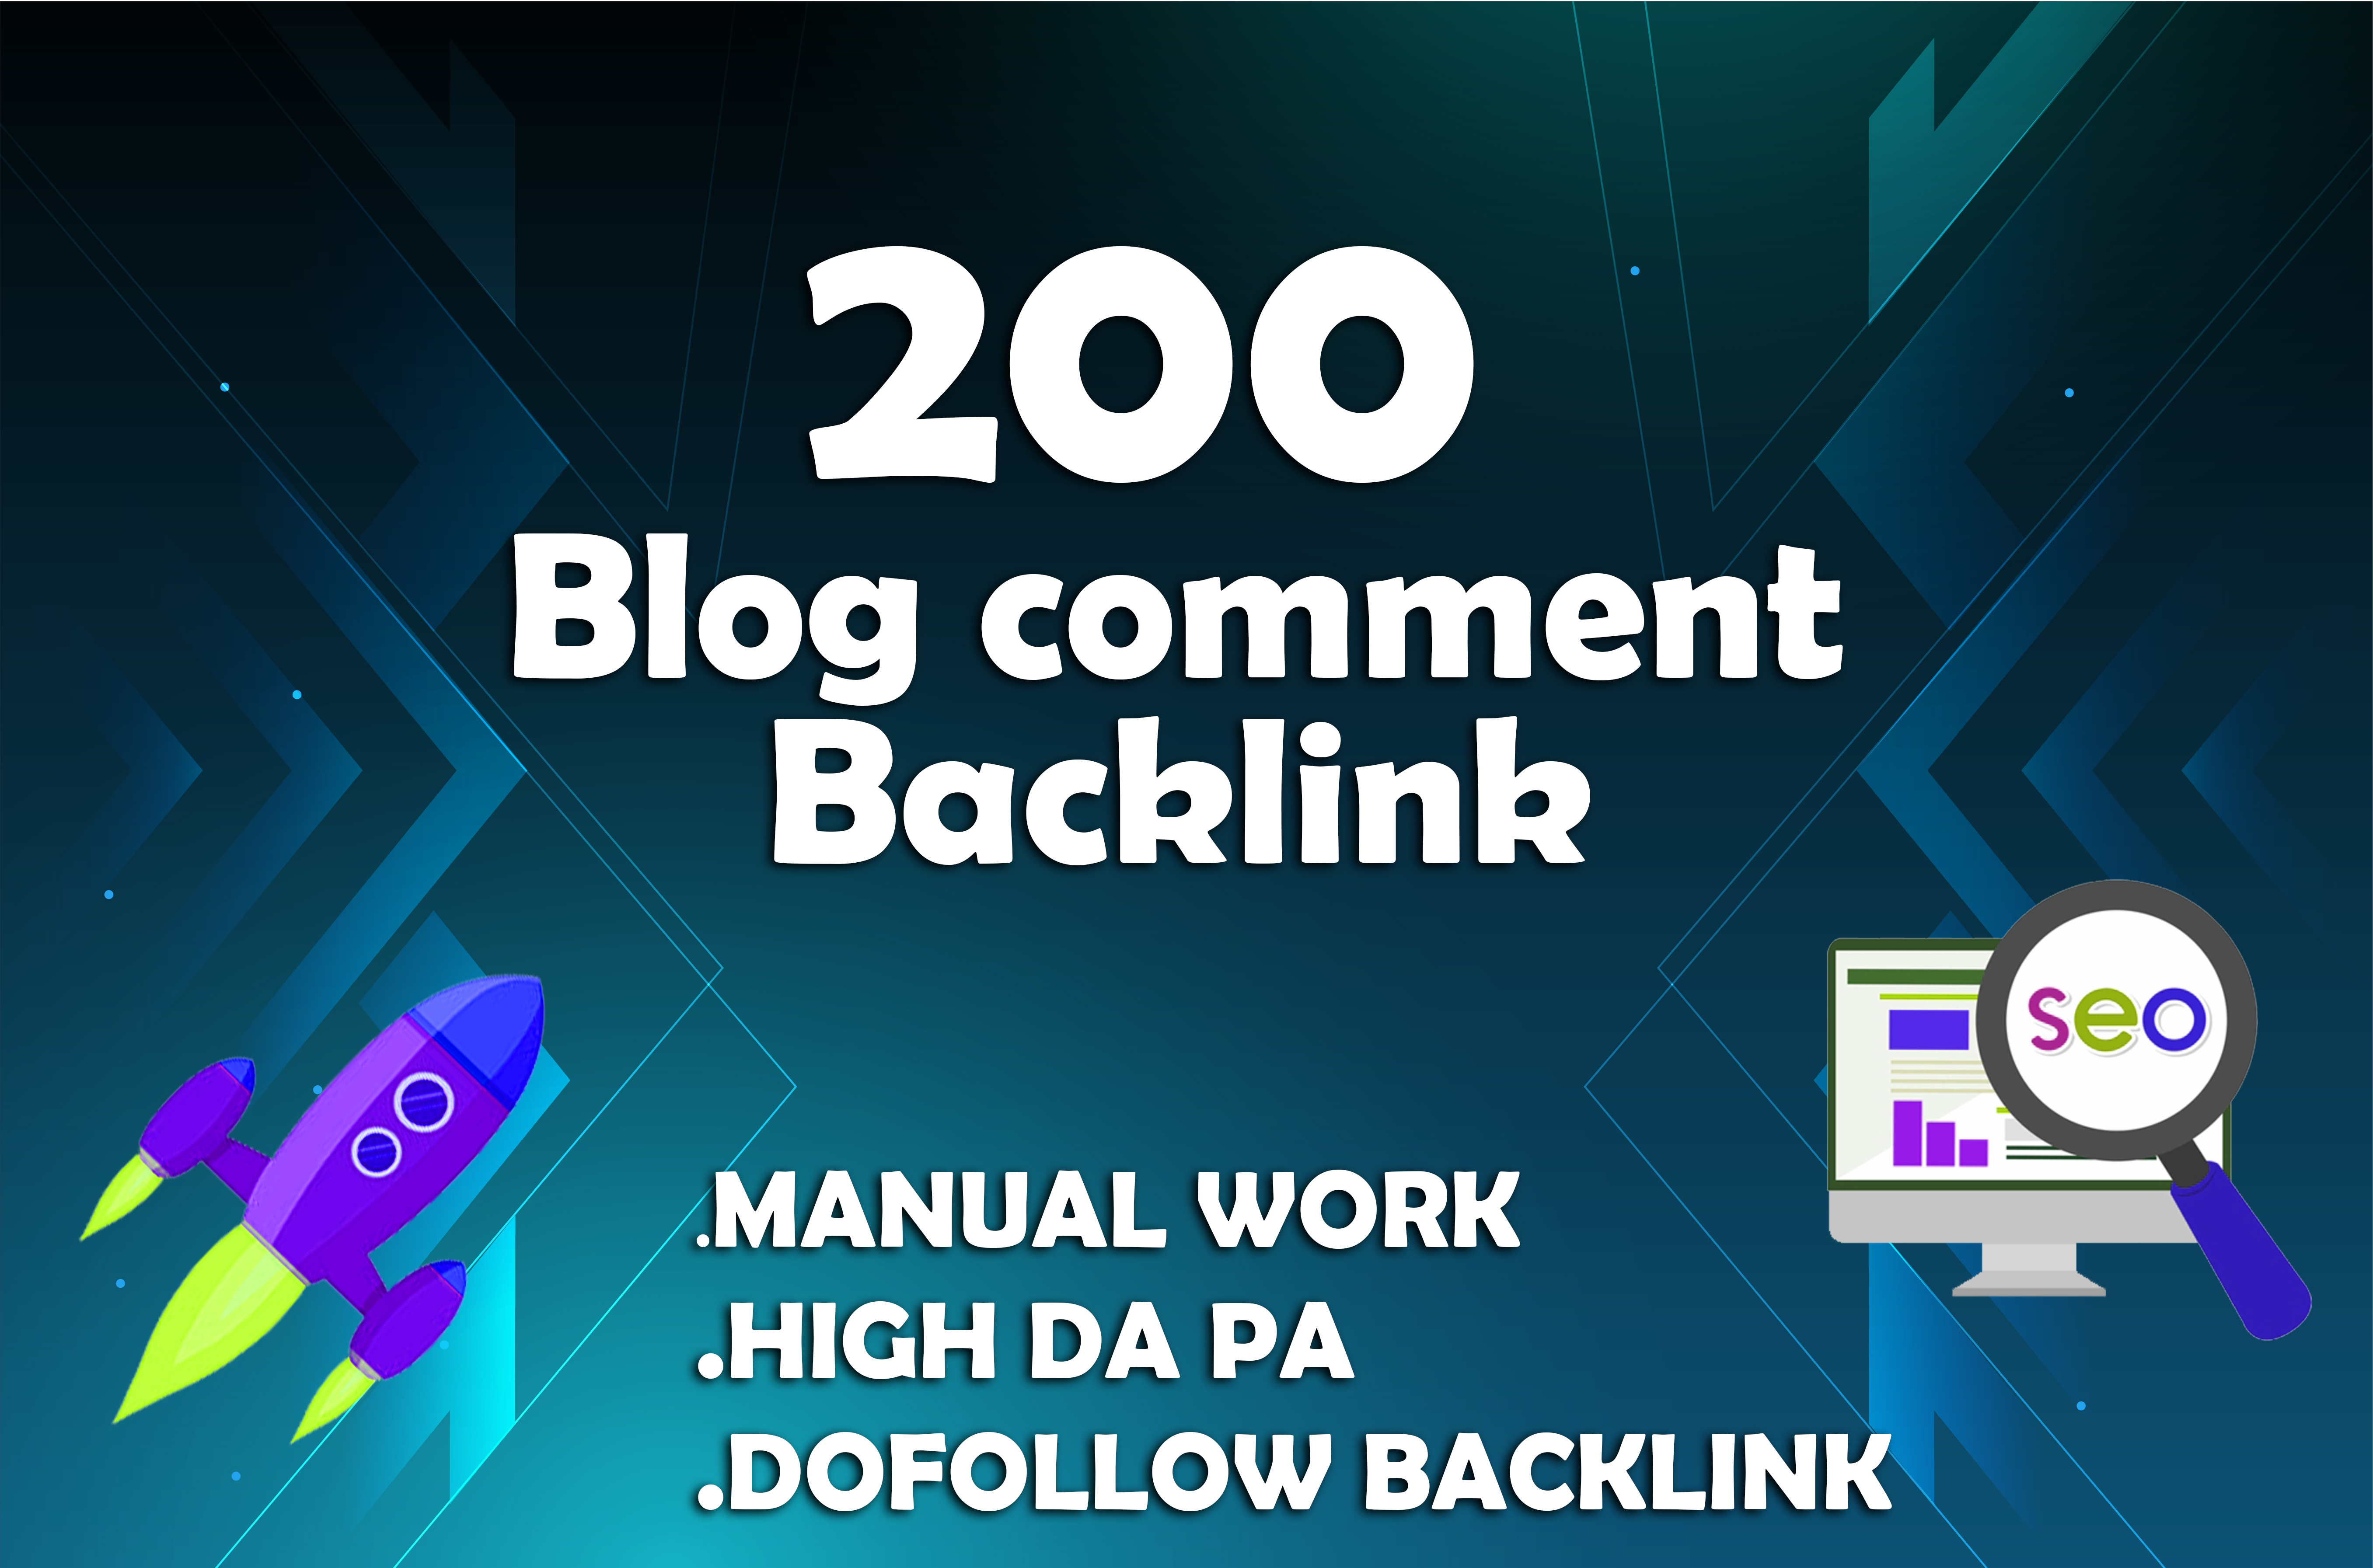 I create 200 manual blog comment backlink with high da pa